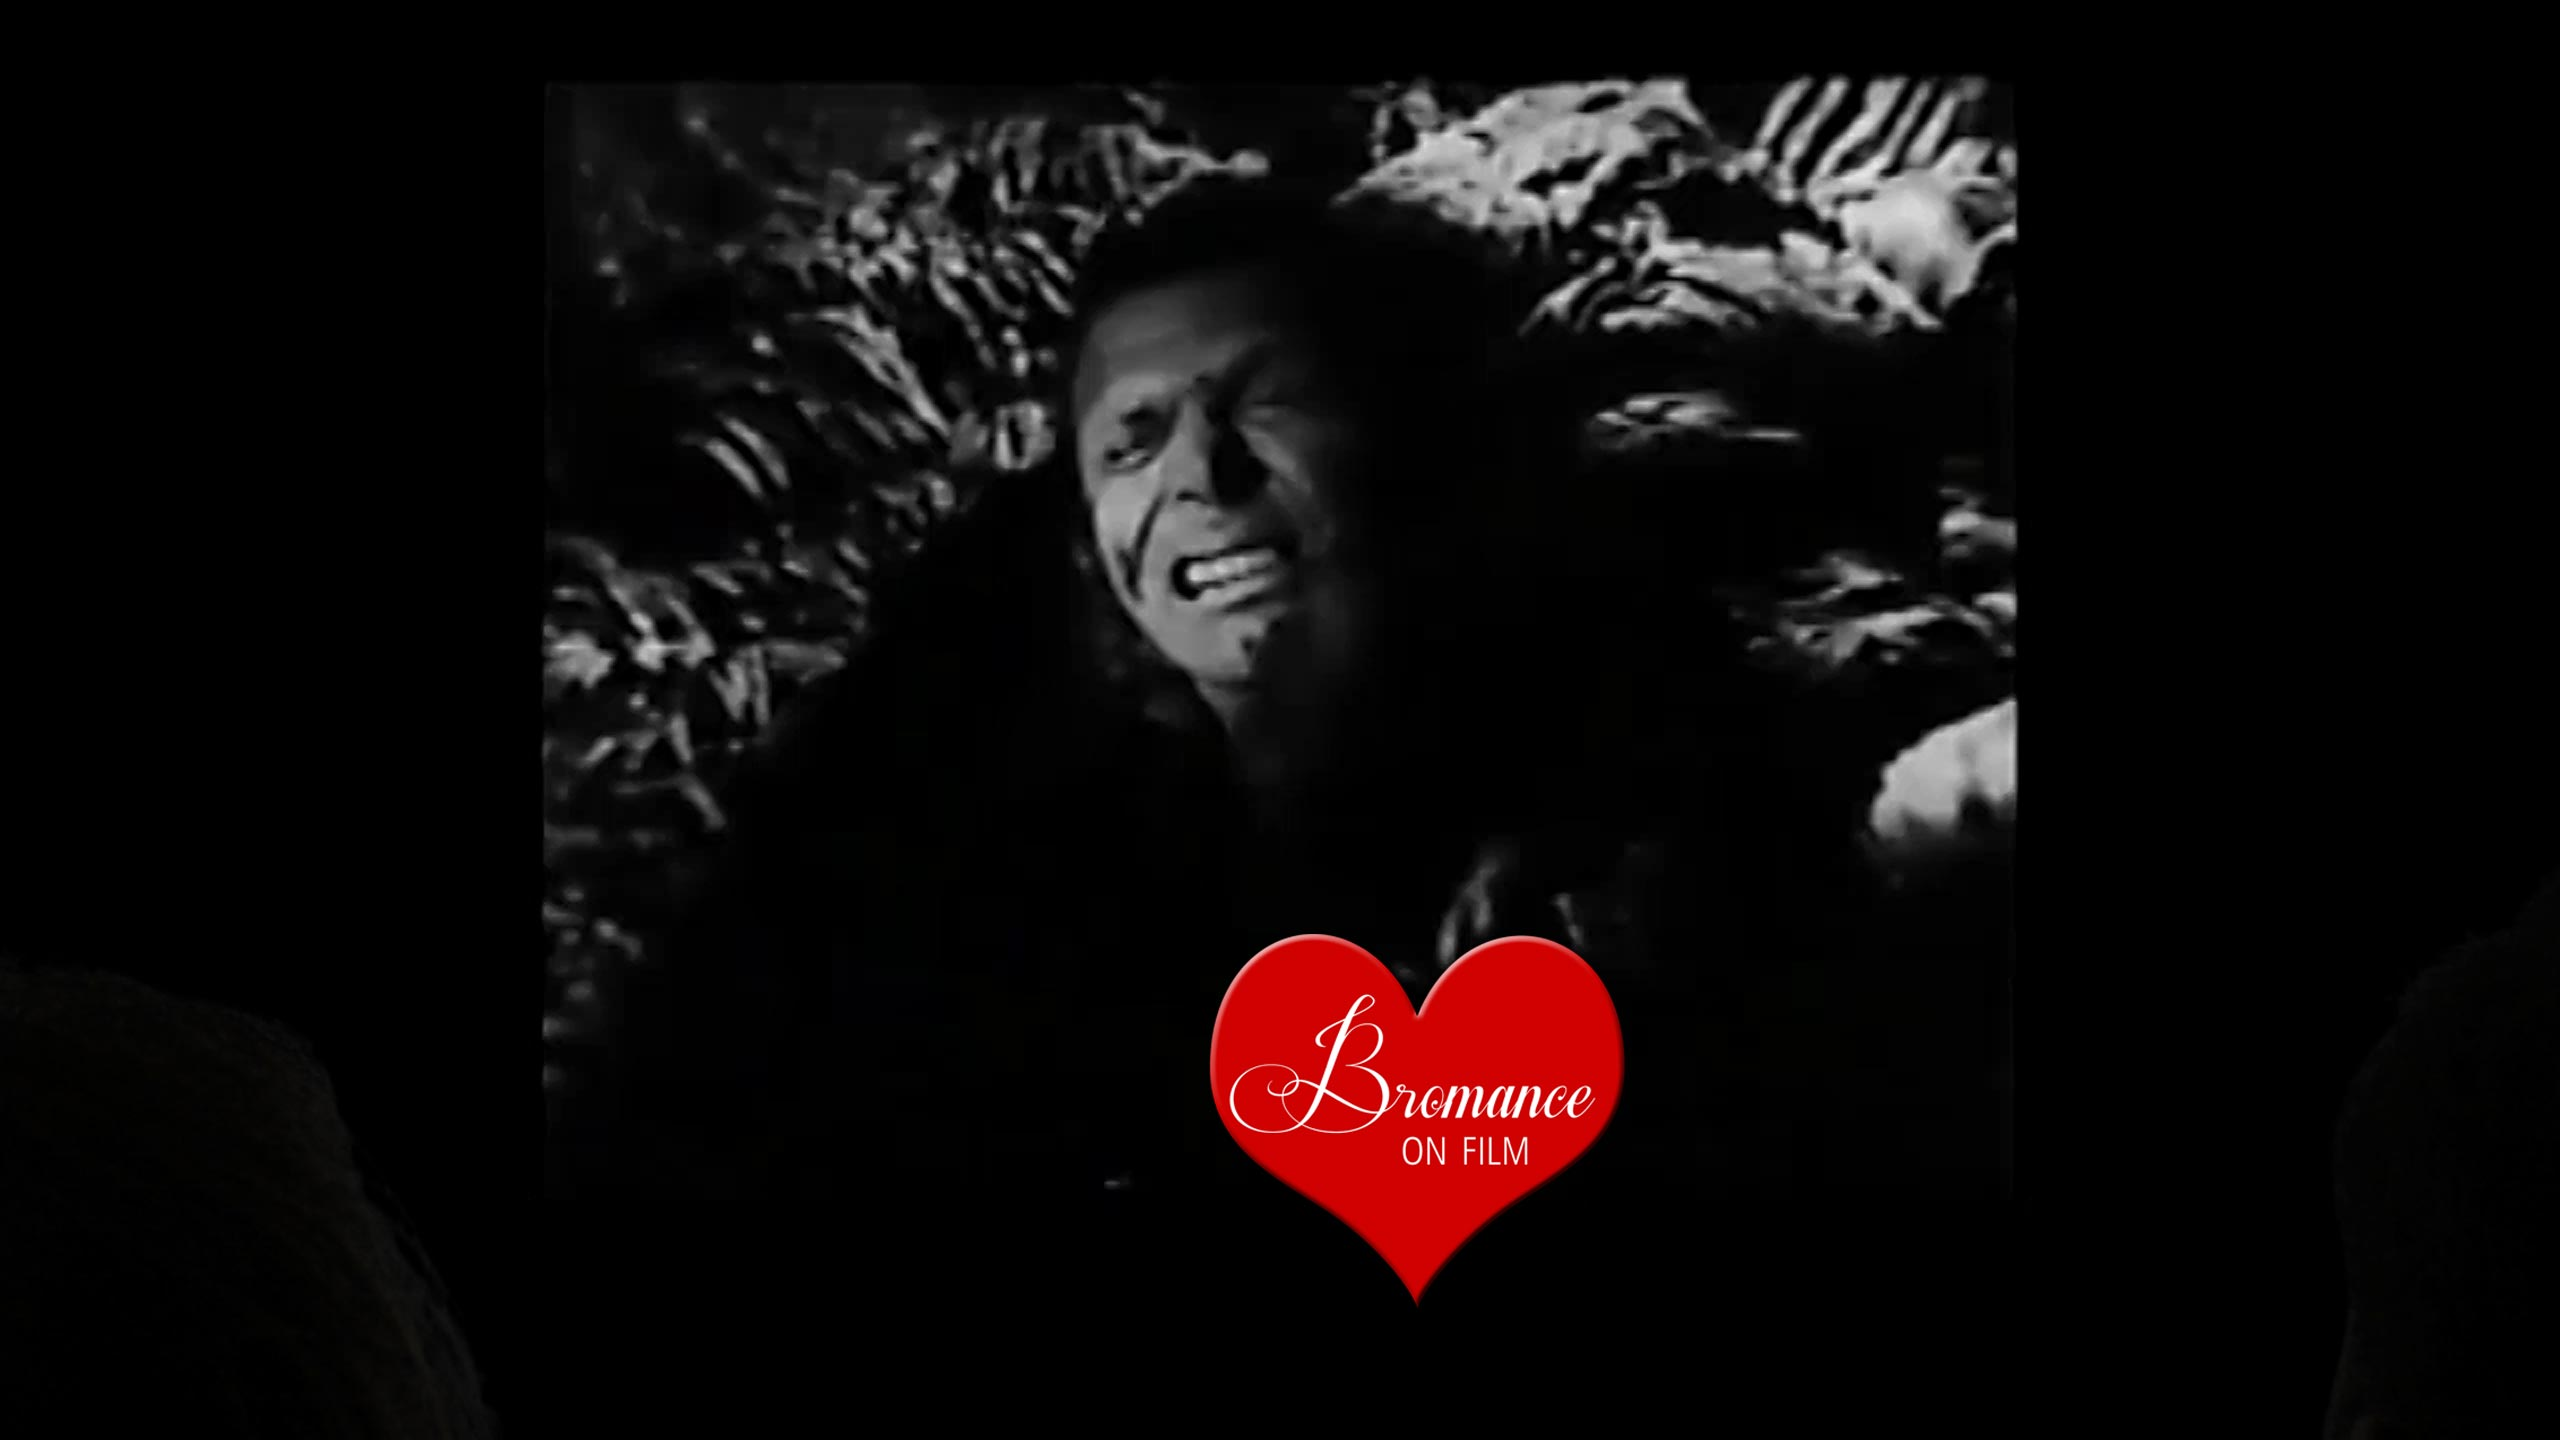 Bromance On Film - Caltiki! The Immortal Monster